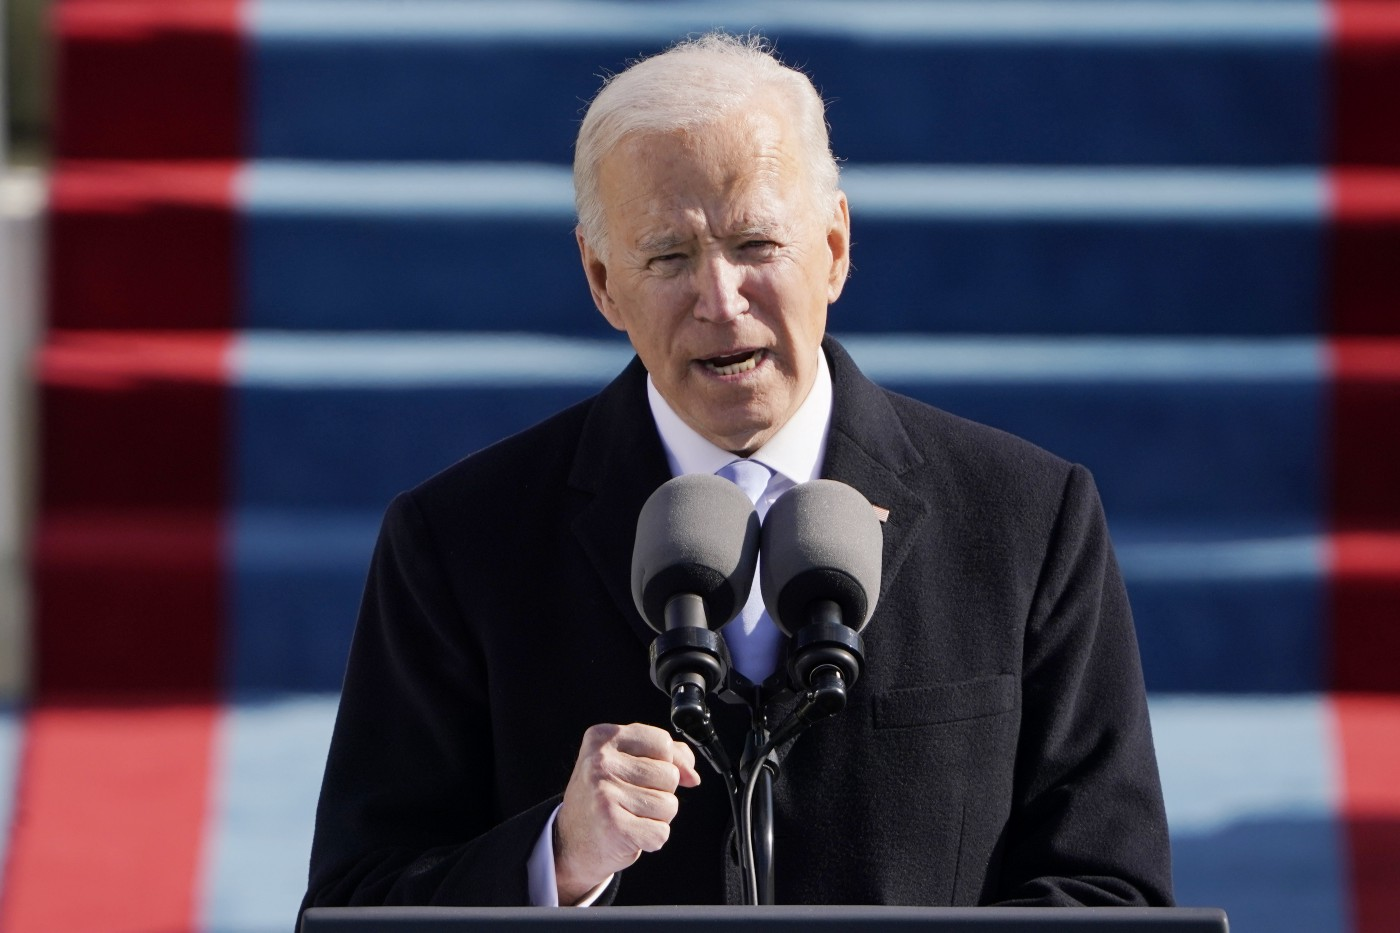 President Joe Biden speaks during the the 59th inaugural ceremony on the West Front of the U.S. Capitol on January 20, 2021